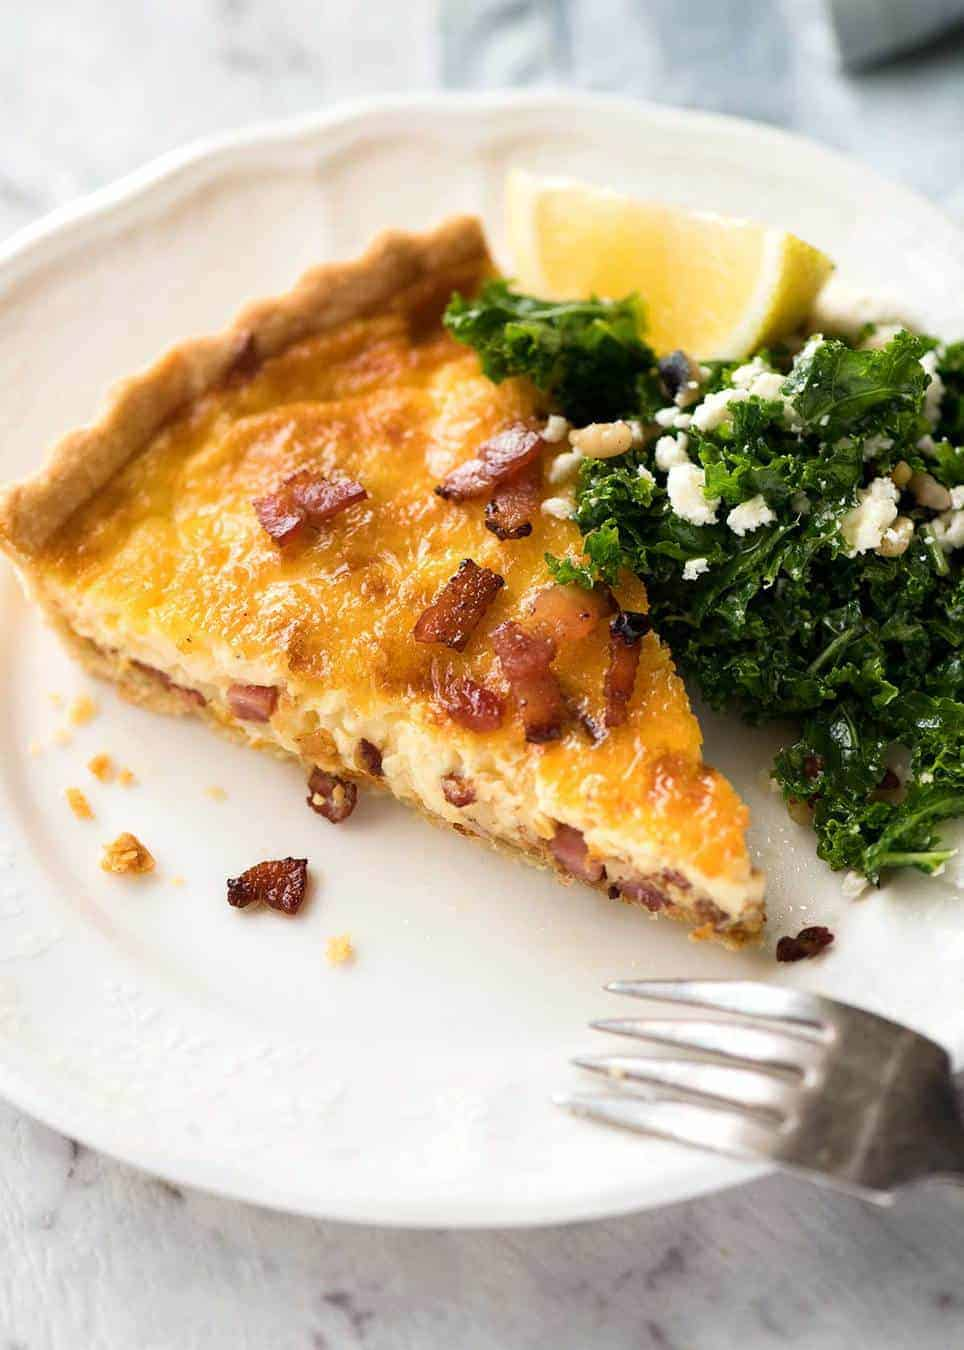 A slice of Quiche Lorraine on a plate, ready to be eaten.